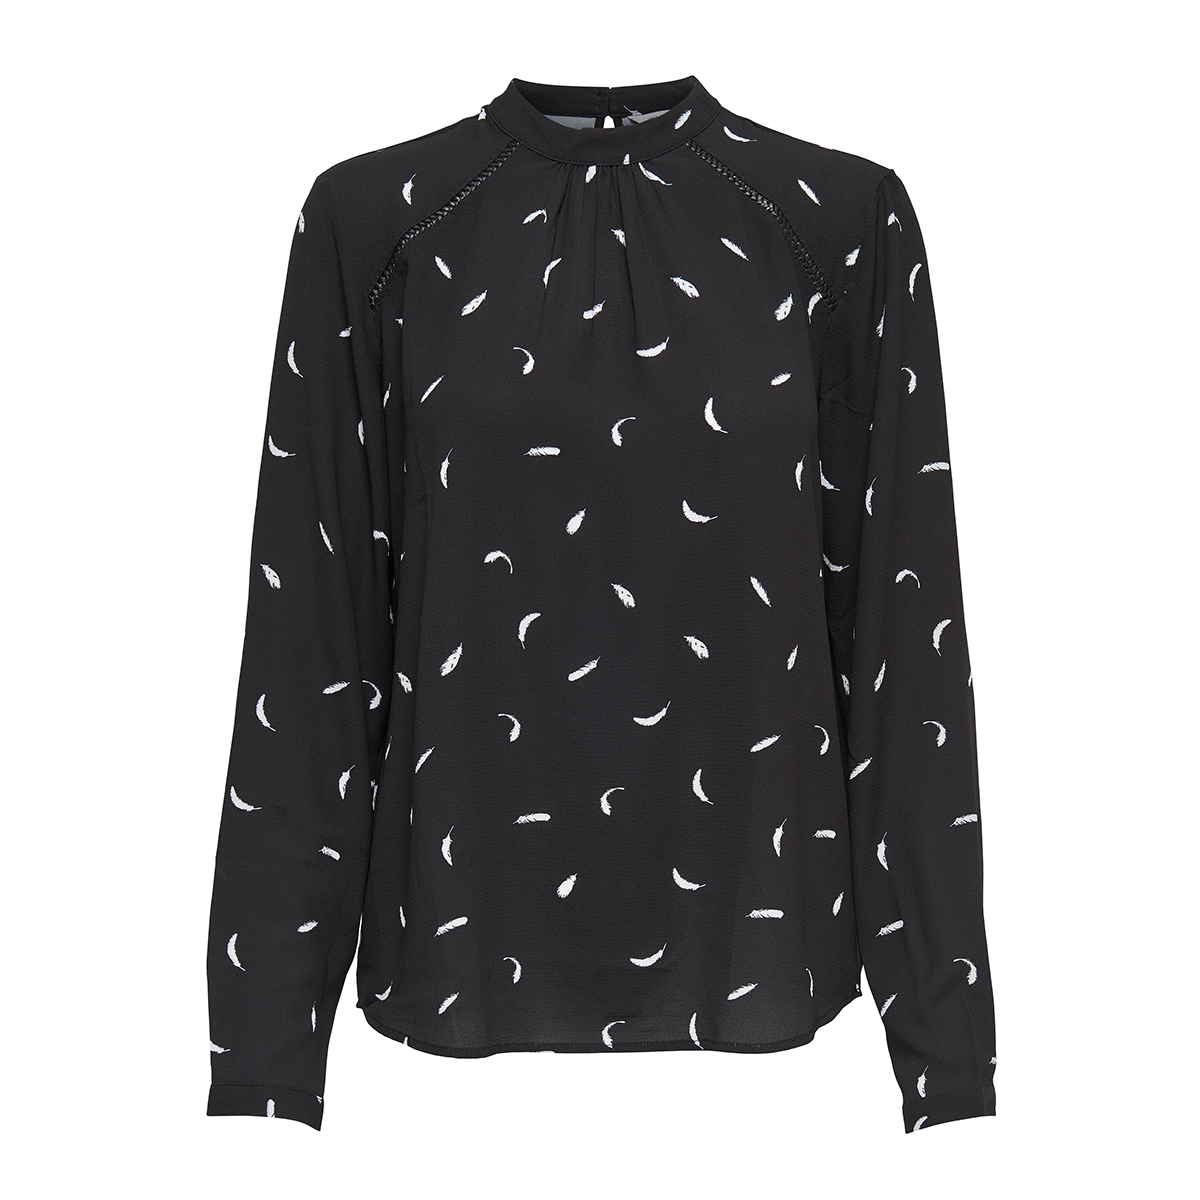 onlnew mallory  aop l/s blouse wvn 15154629 only t-shirt black/cd feathers